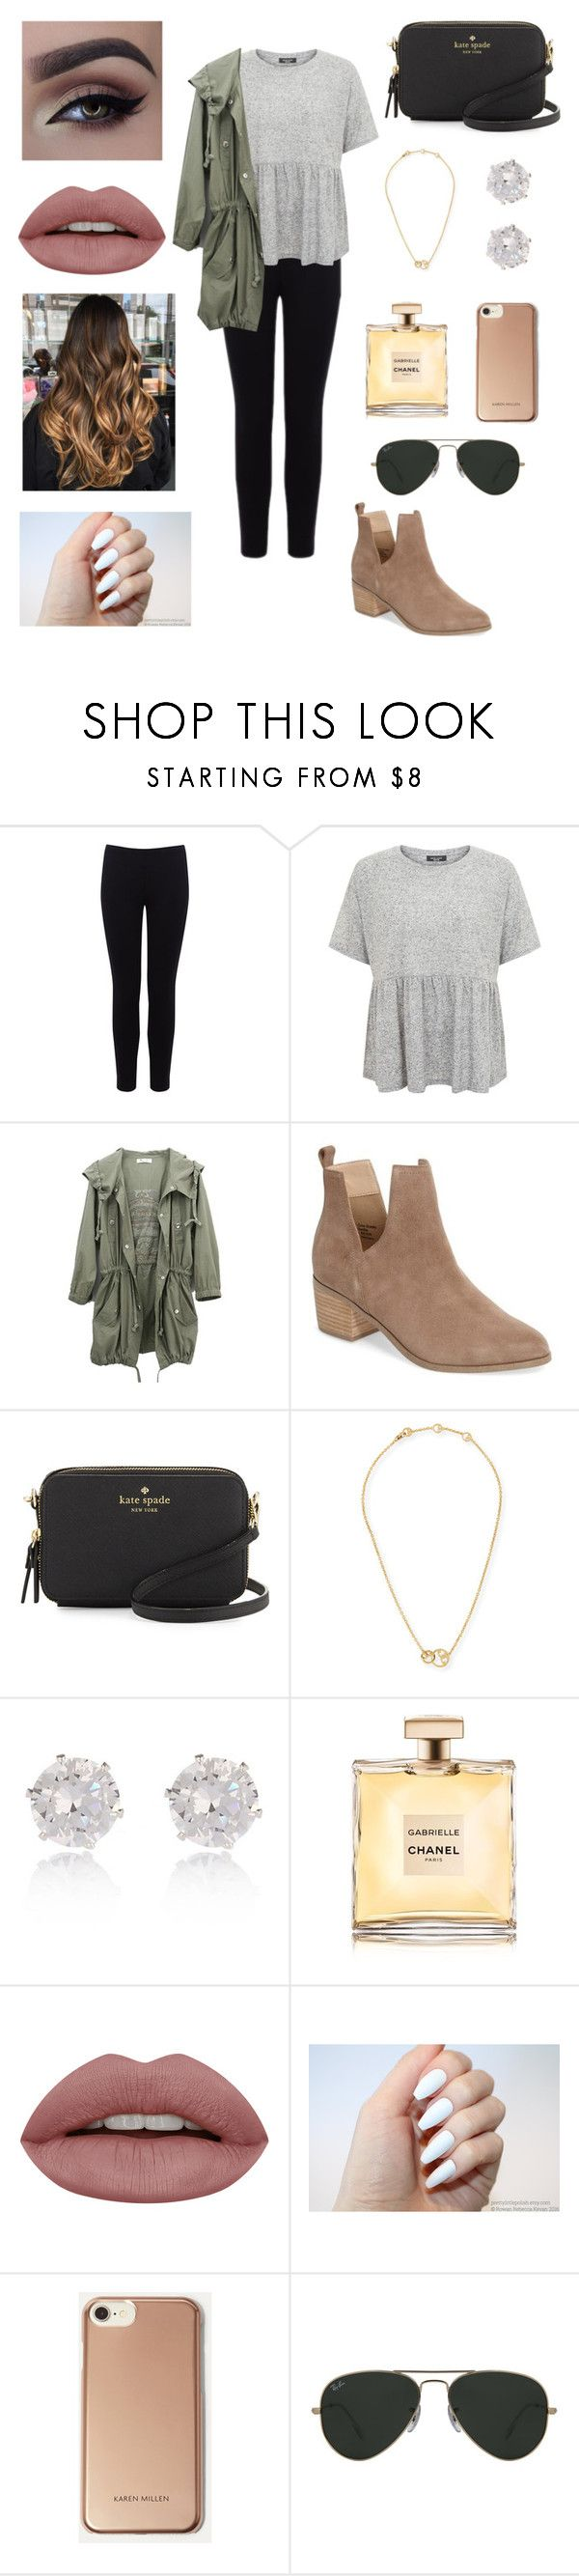 """3 day weekend this weekend !!"" by ashleymurphyyyy ❤ liked on Polyvore featuring Warehouse, Sole Society, Kate Spade, Tory Burch, River Island, Karen Millen and Ray-Ban"